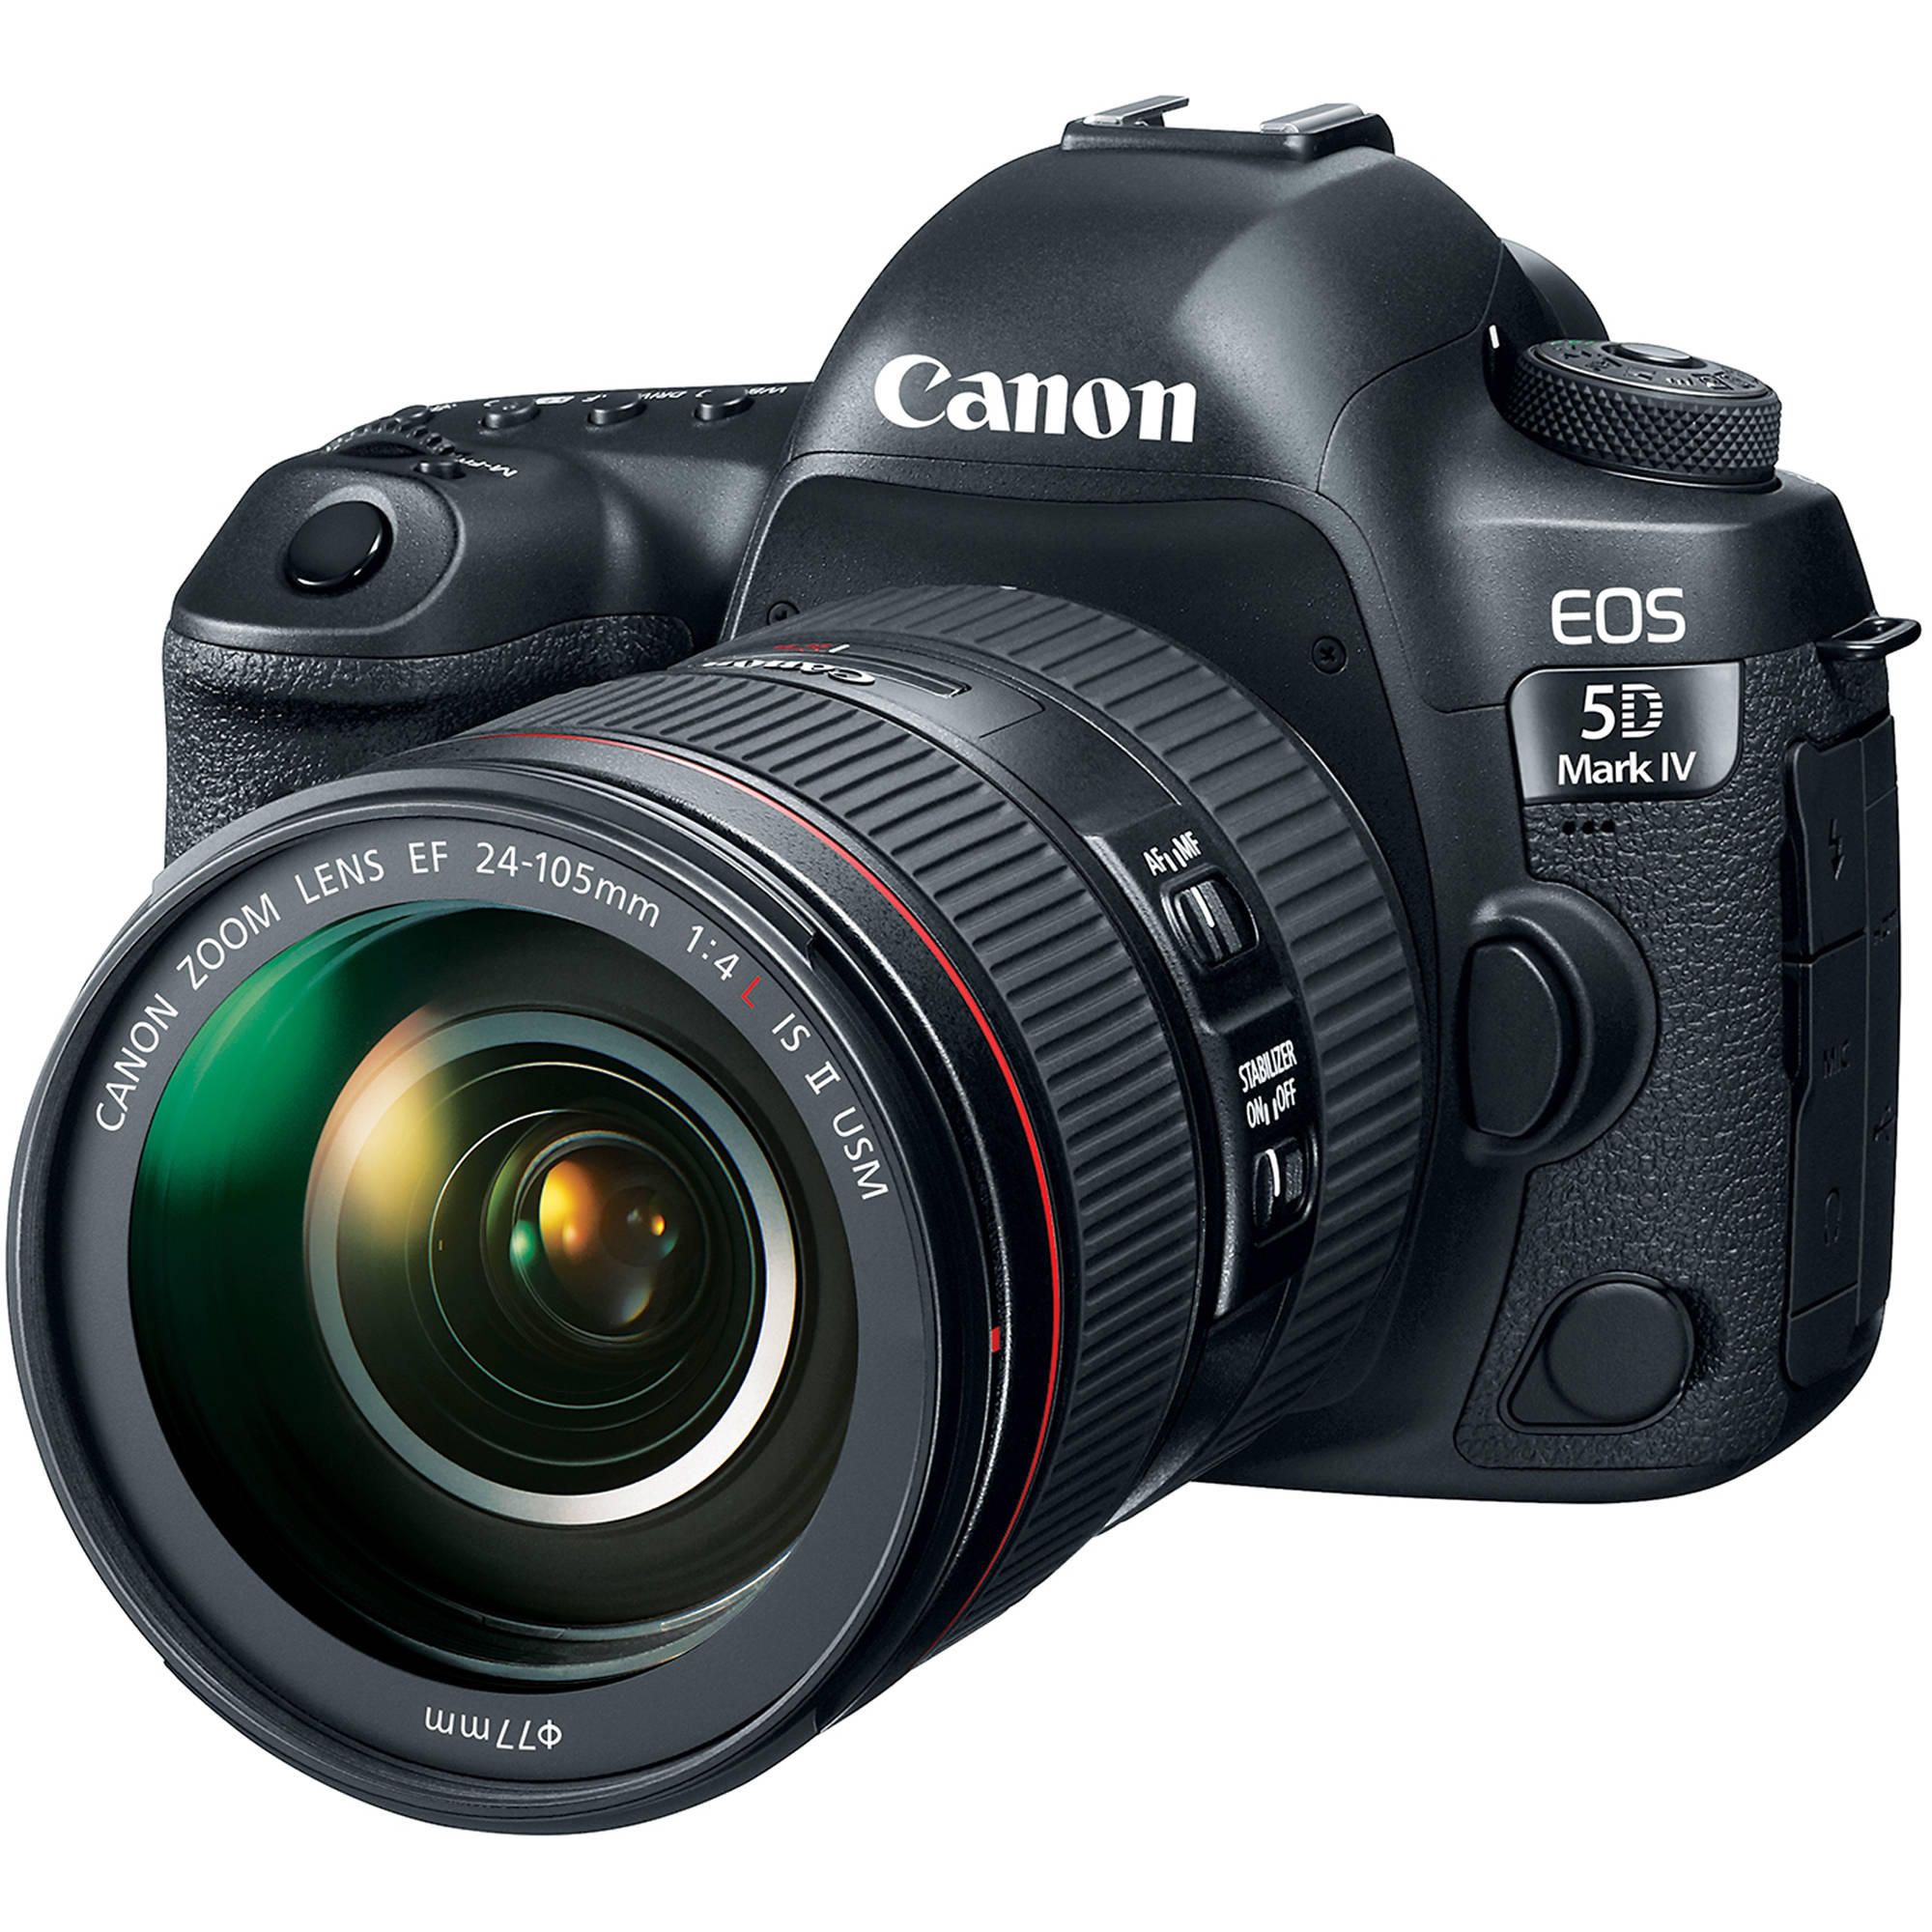 Camera How Much Are Dslr Cameras canon eos 5d mark iv dslr camera with 24 105mm f4l ii 1483c010 lens